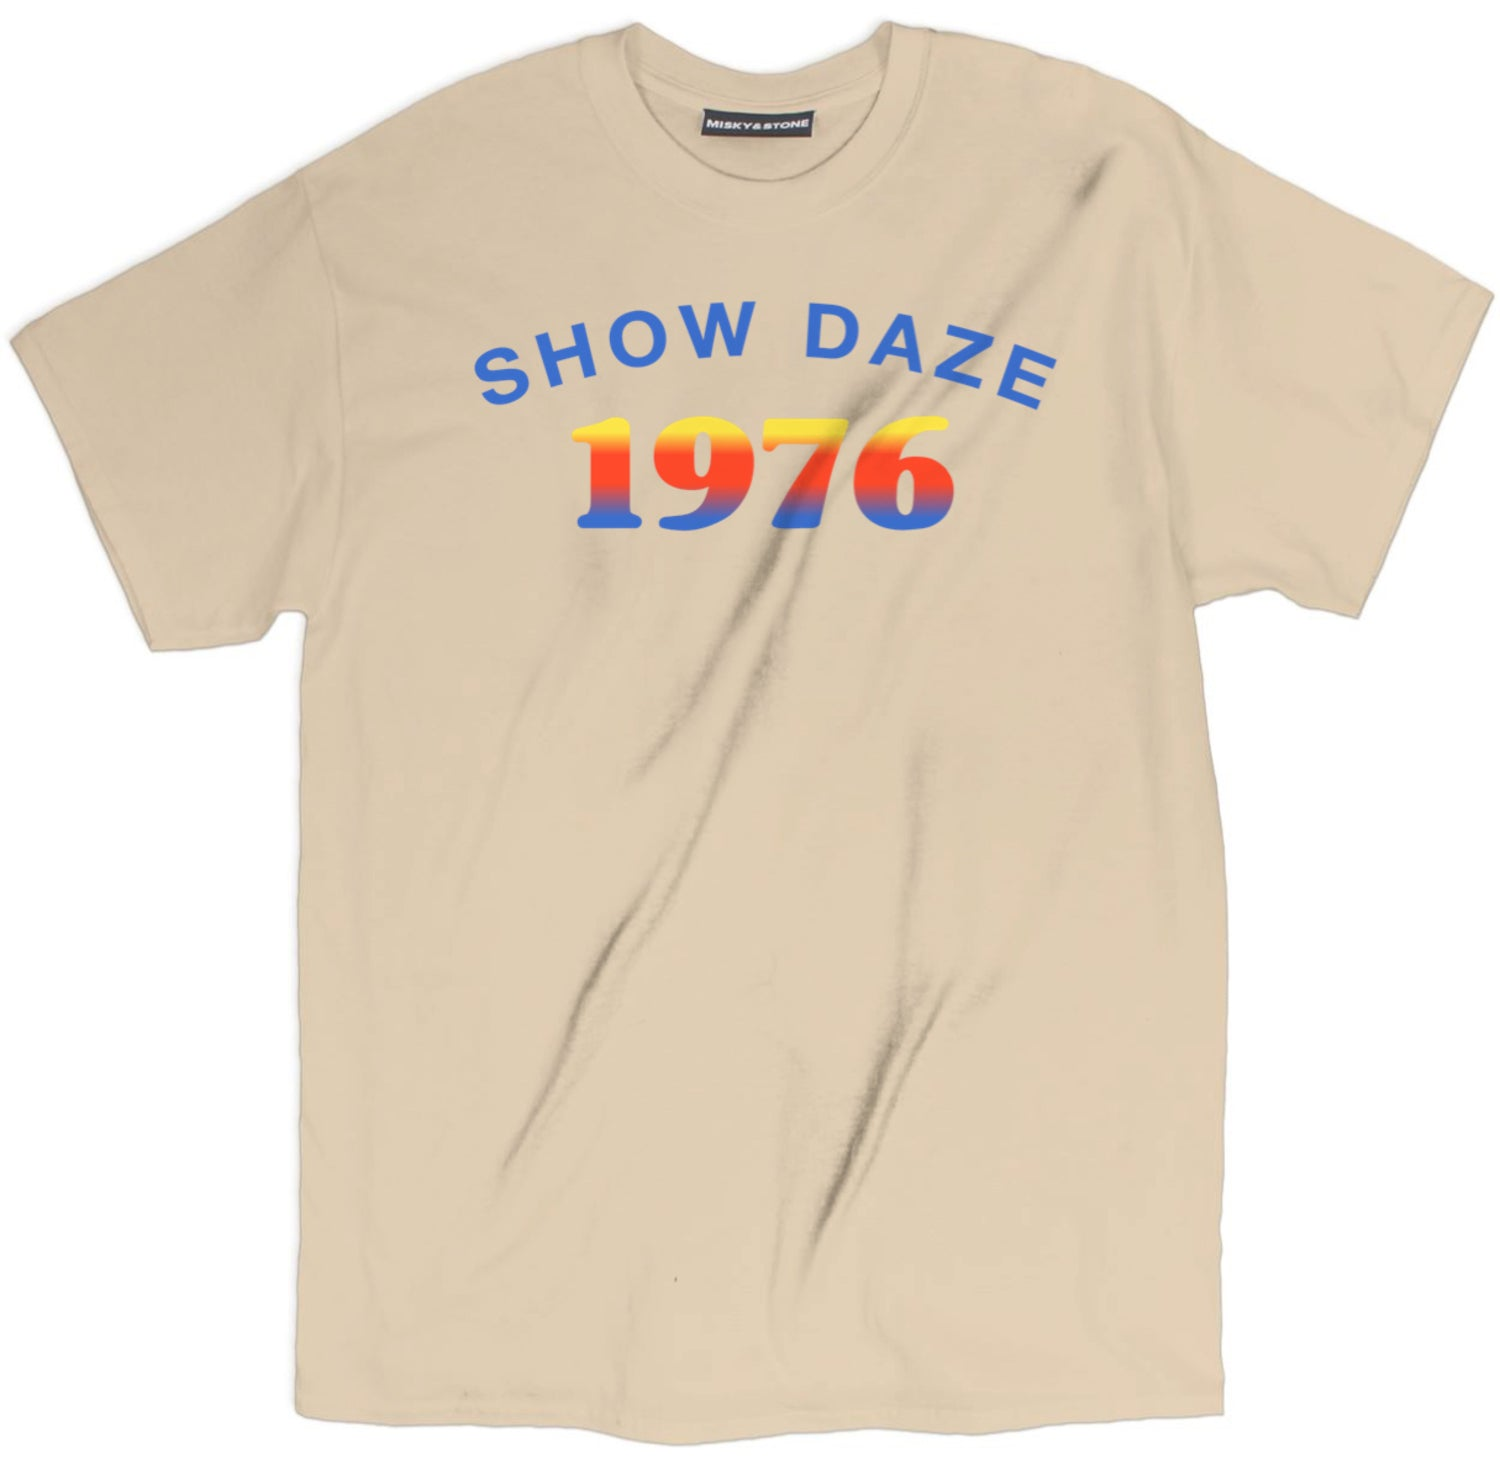 1976 t shirt, vintage t shirts, vintage graphic tees, vintage shirts, vintage tees, vintage tshirts, retro t shirts, retro shirts, womens vintage tees, vintage t shirts womens, womens vintage graphic tees, vintage shirts womens,